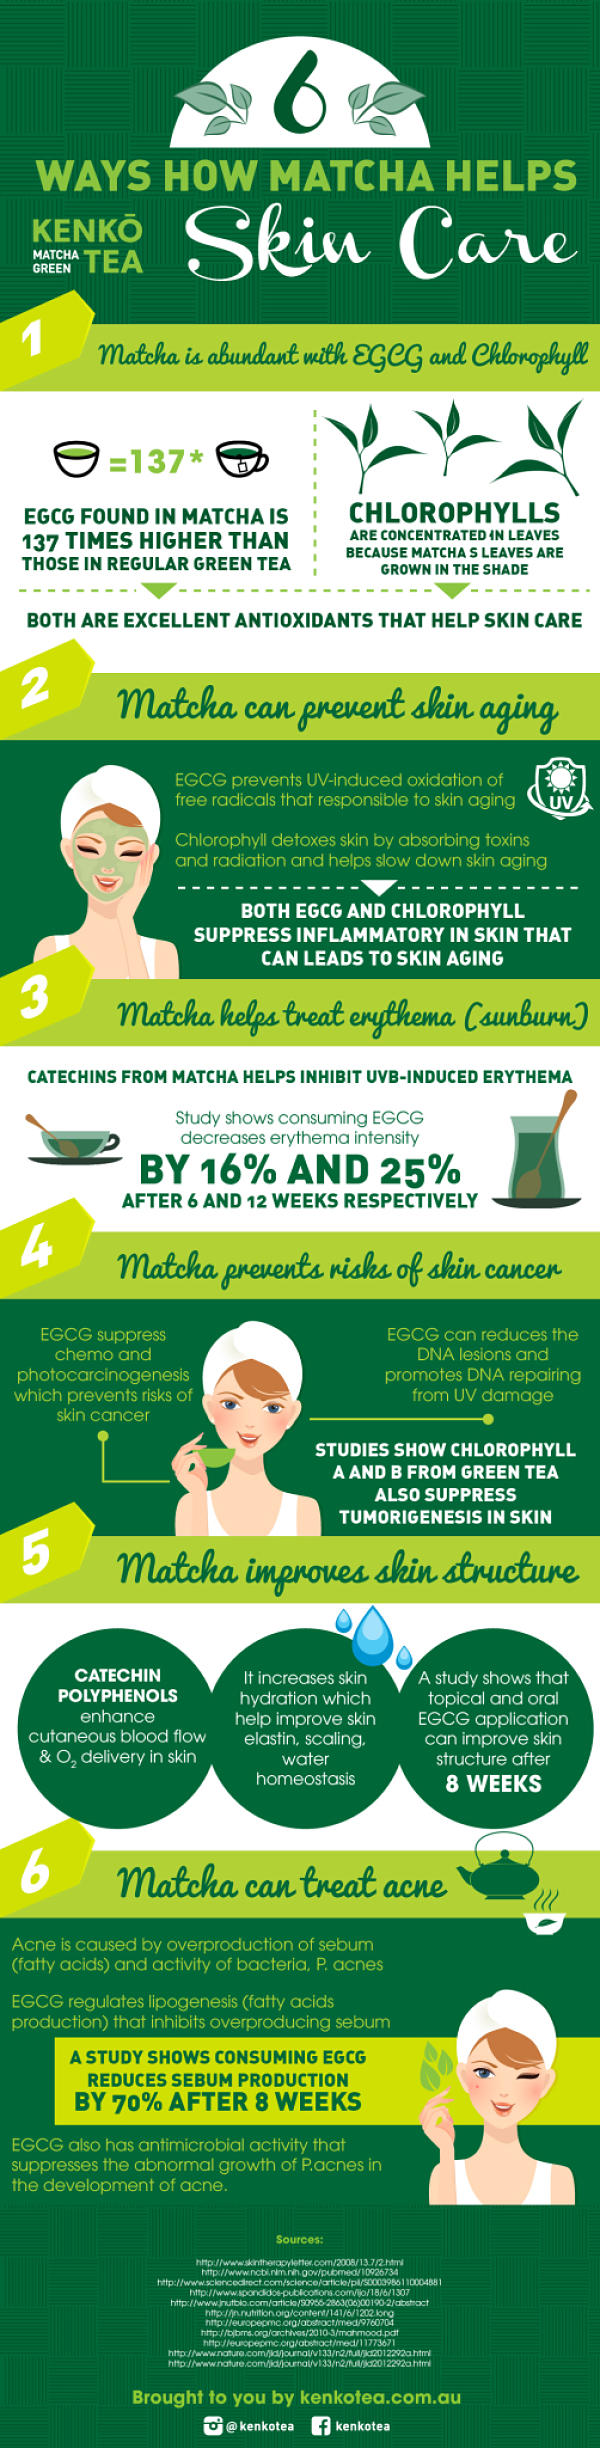 Infographic of 6 ways matcha green tea helps improves skin aging, acnes, skin hydration, skin elastin